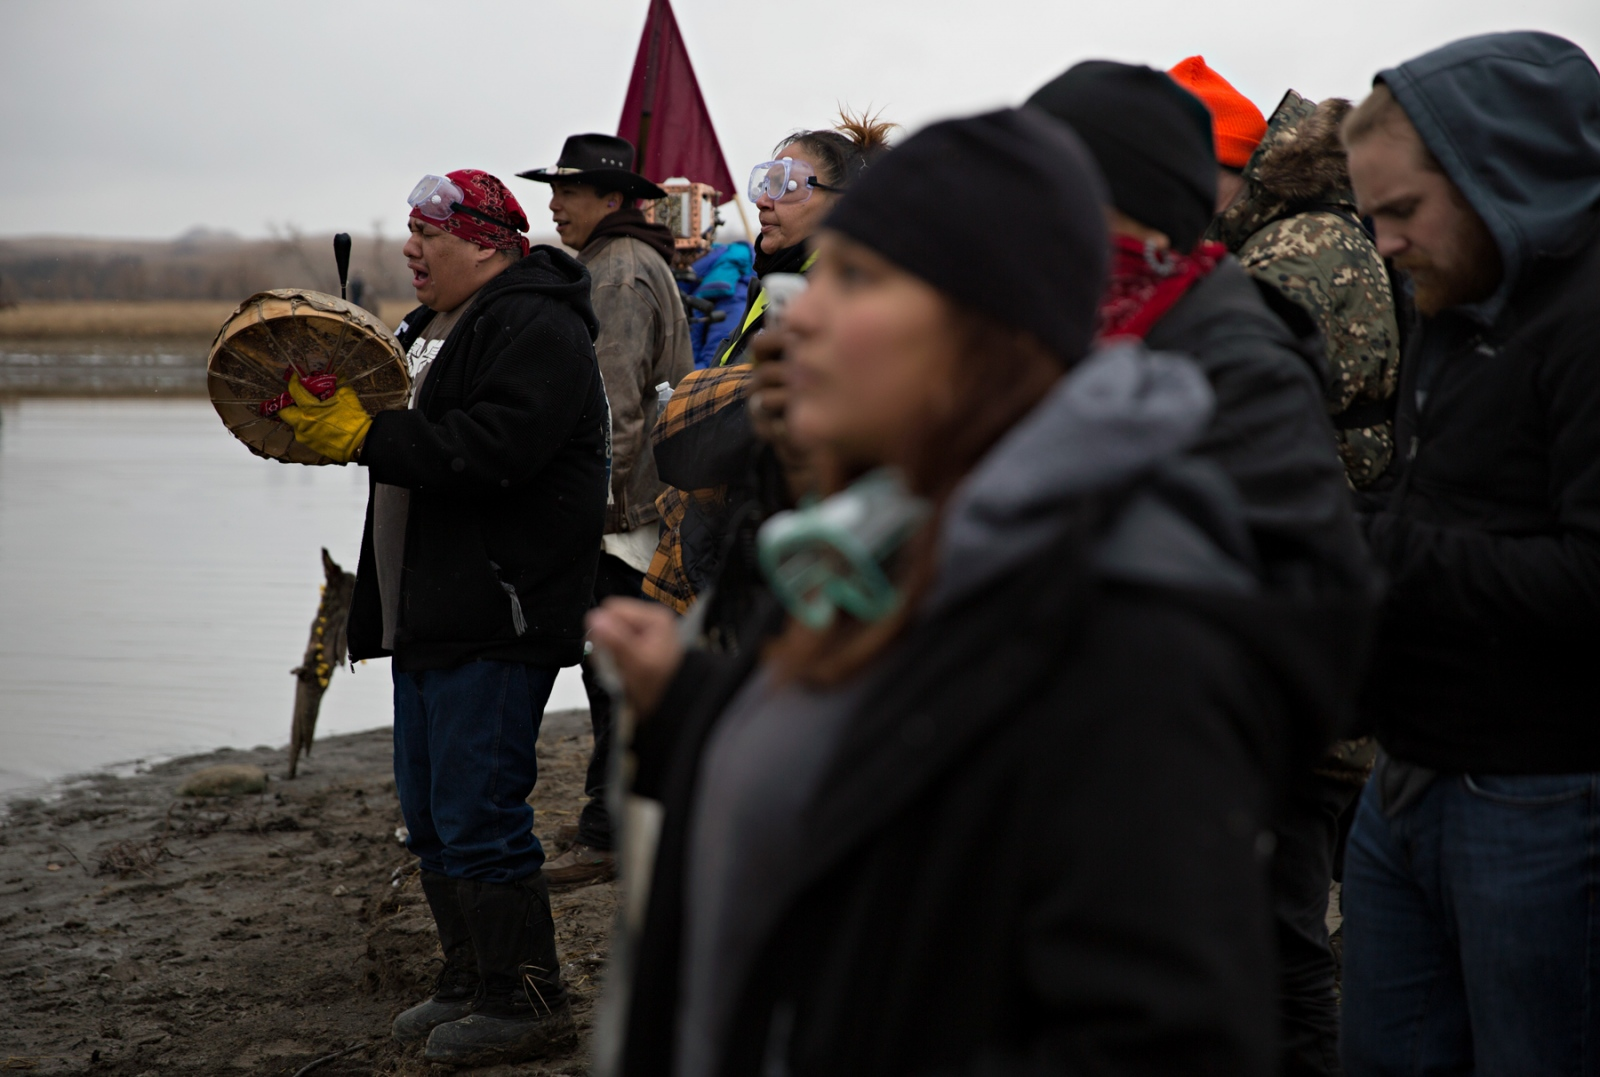 While a bridge that was destroyed by the local law enforcement was being rebuilt, water protectors chant in response to the law enforcement directives to leave the area.